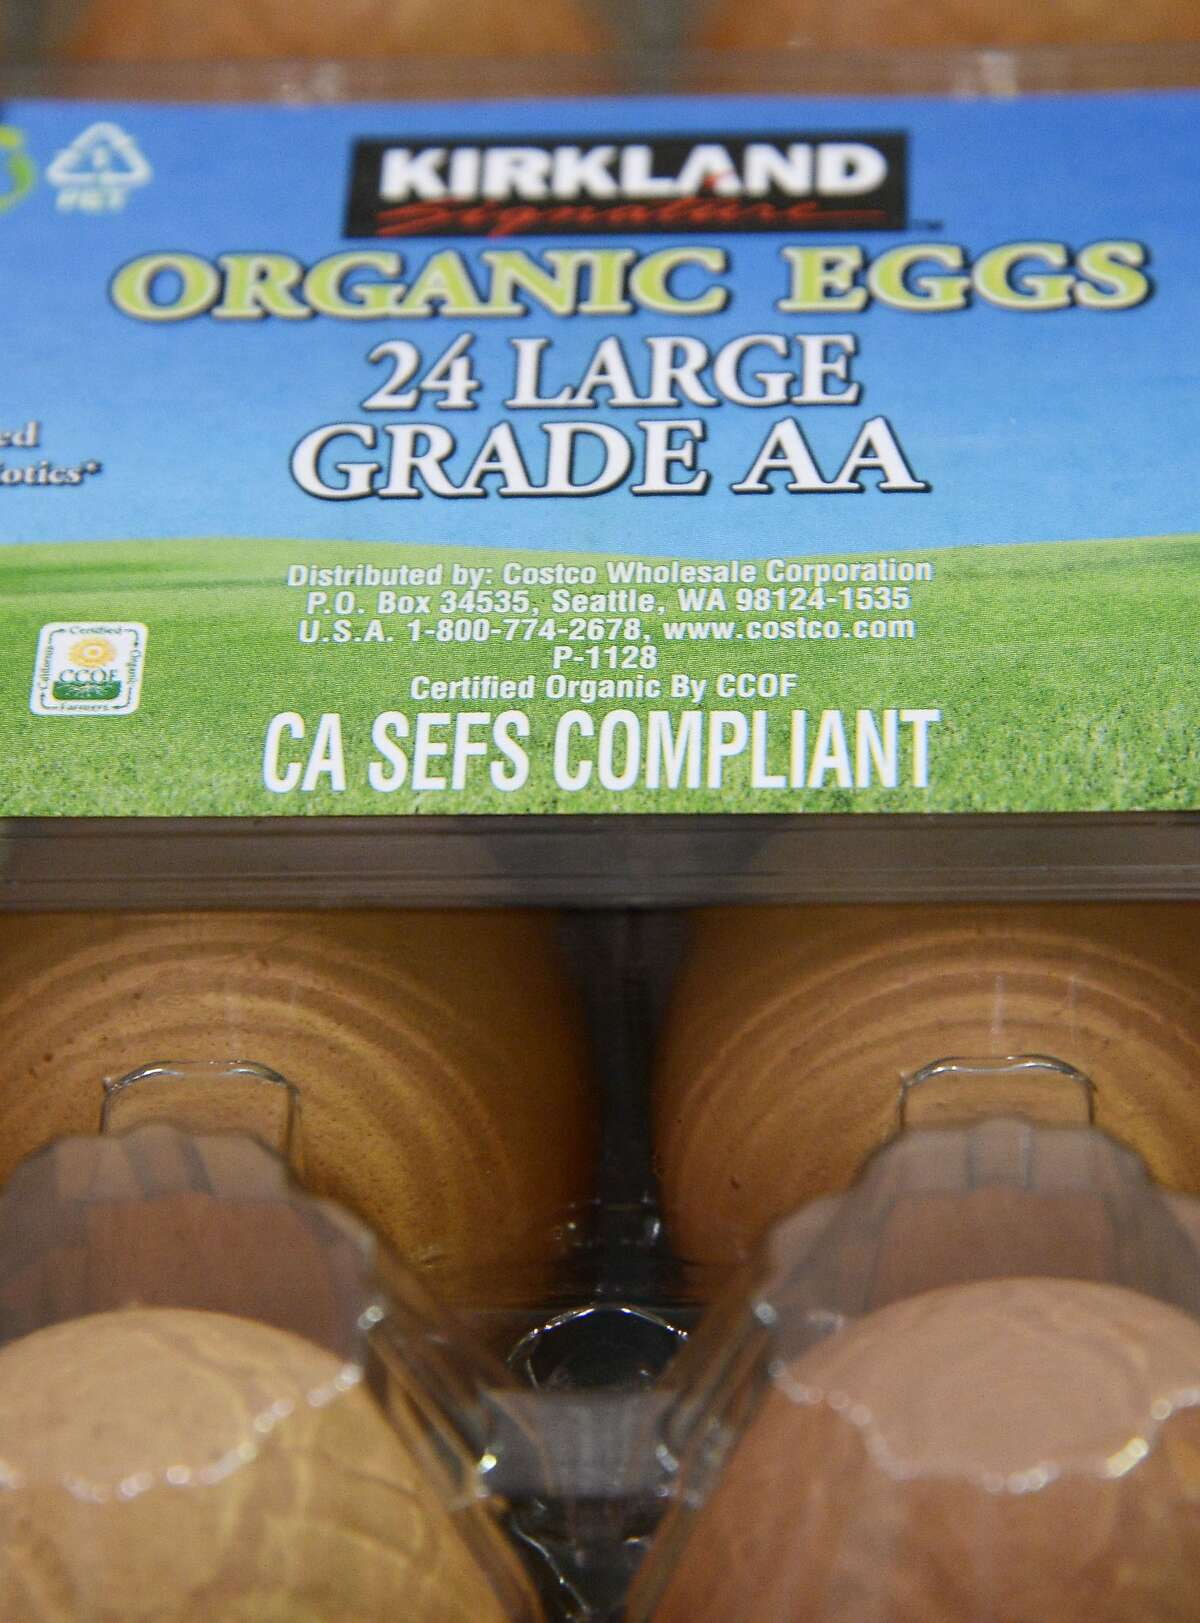 """Organic eggs with a """"CA SEFS Compliant"""" label are seen in Burbank, California, December 31, 2014. Starting January 1, a new regulation requiring all eggs sold in California to come from chickens that have a enough room to fully extend their limbs and turn around freely in their living space goes into effect. The label """"CA SEFS Compliant"""" stands for California Shell Egg Food Safety Compliant and indicates the eggs comply with the new regulation, the result of a voter initiative that passed with over 60 percent of the vote in 2008. AFP PHOTO / ROBYN BECKROBYN BECK/AFP/Getty Images"""